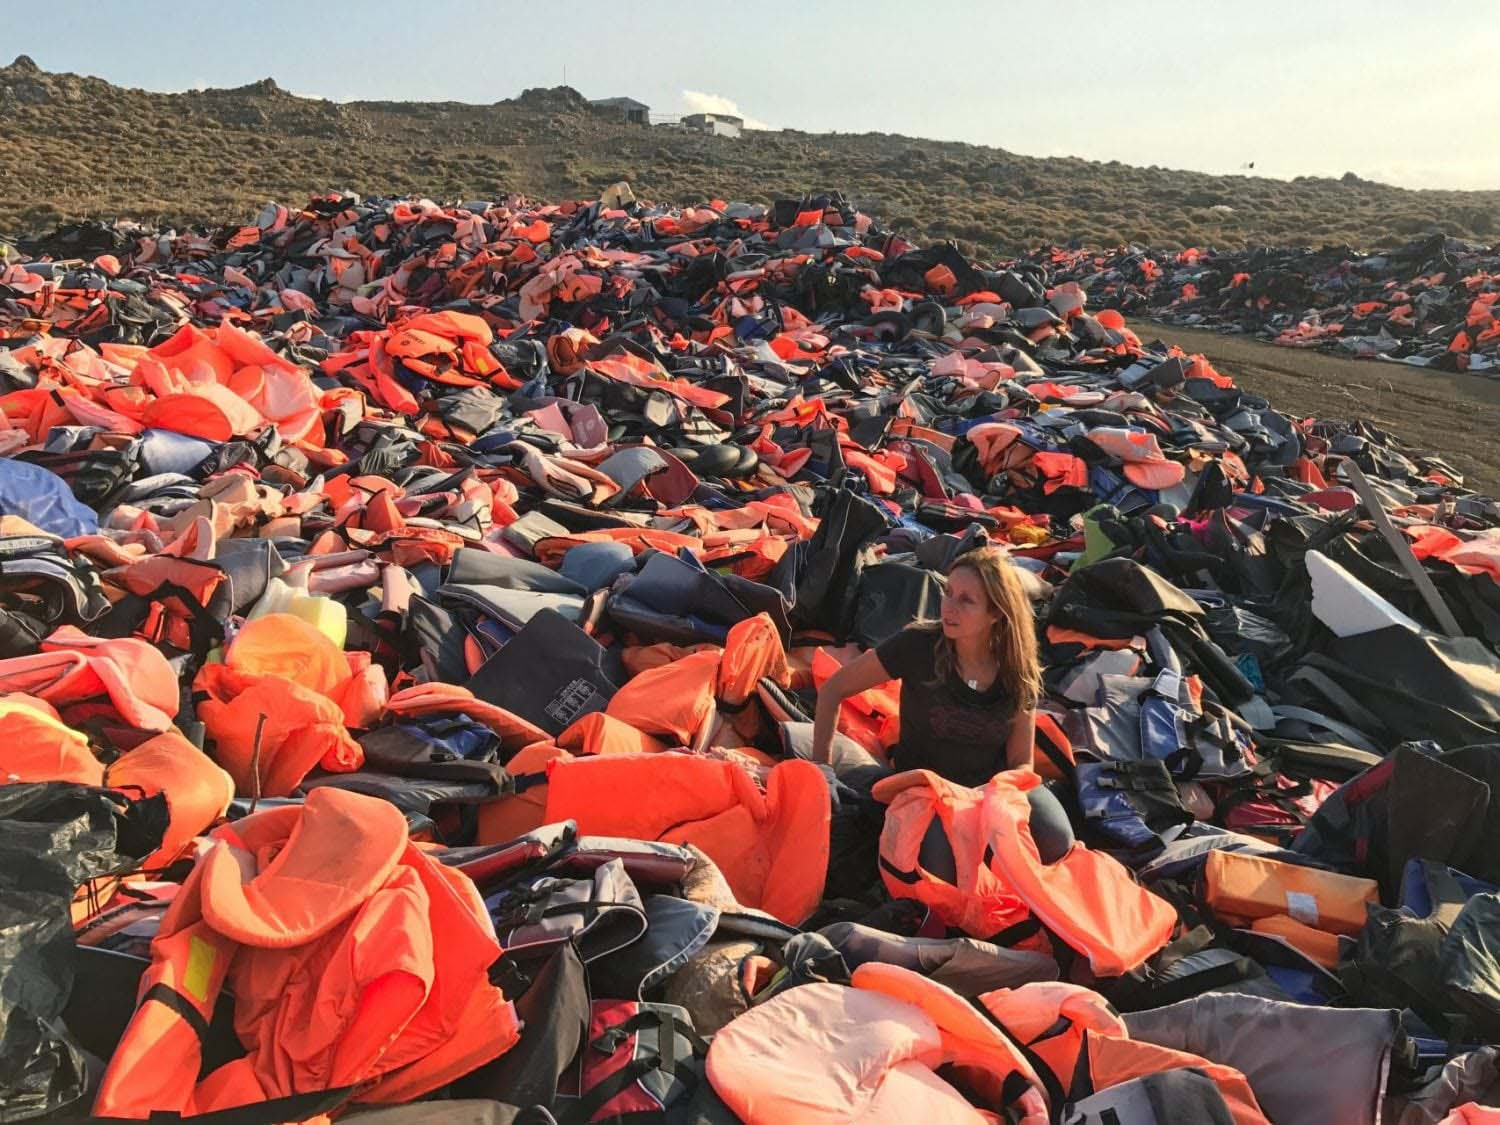 Longobardi sorts through the vast piles of plastic safety gear along the shores of Lesvos. | Photo by Susan Knippenberg